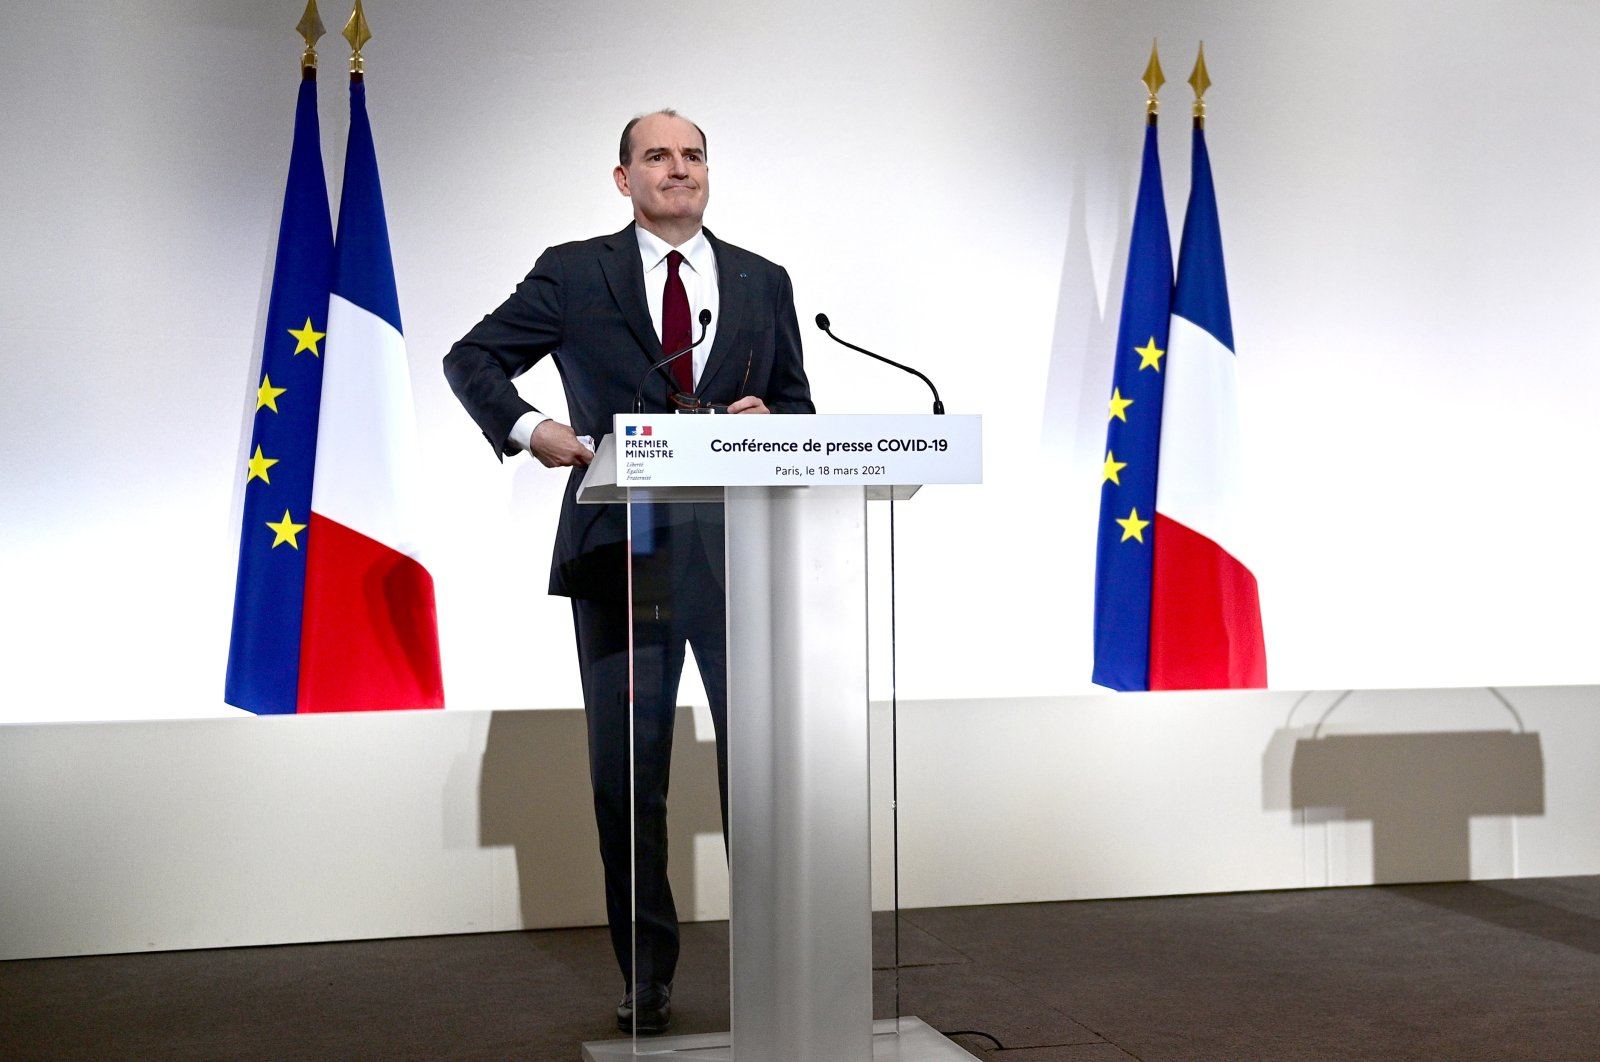 French Prime Minister Jean Castex delivers a press conference on the current French government strategy for the ongoing COVID-19 pandemic in Paris, France, on March 18, 2021. (EPA Photo)